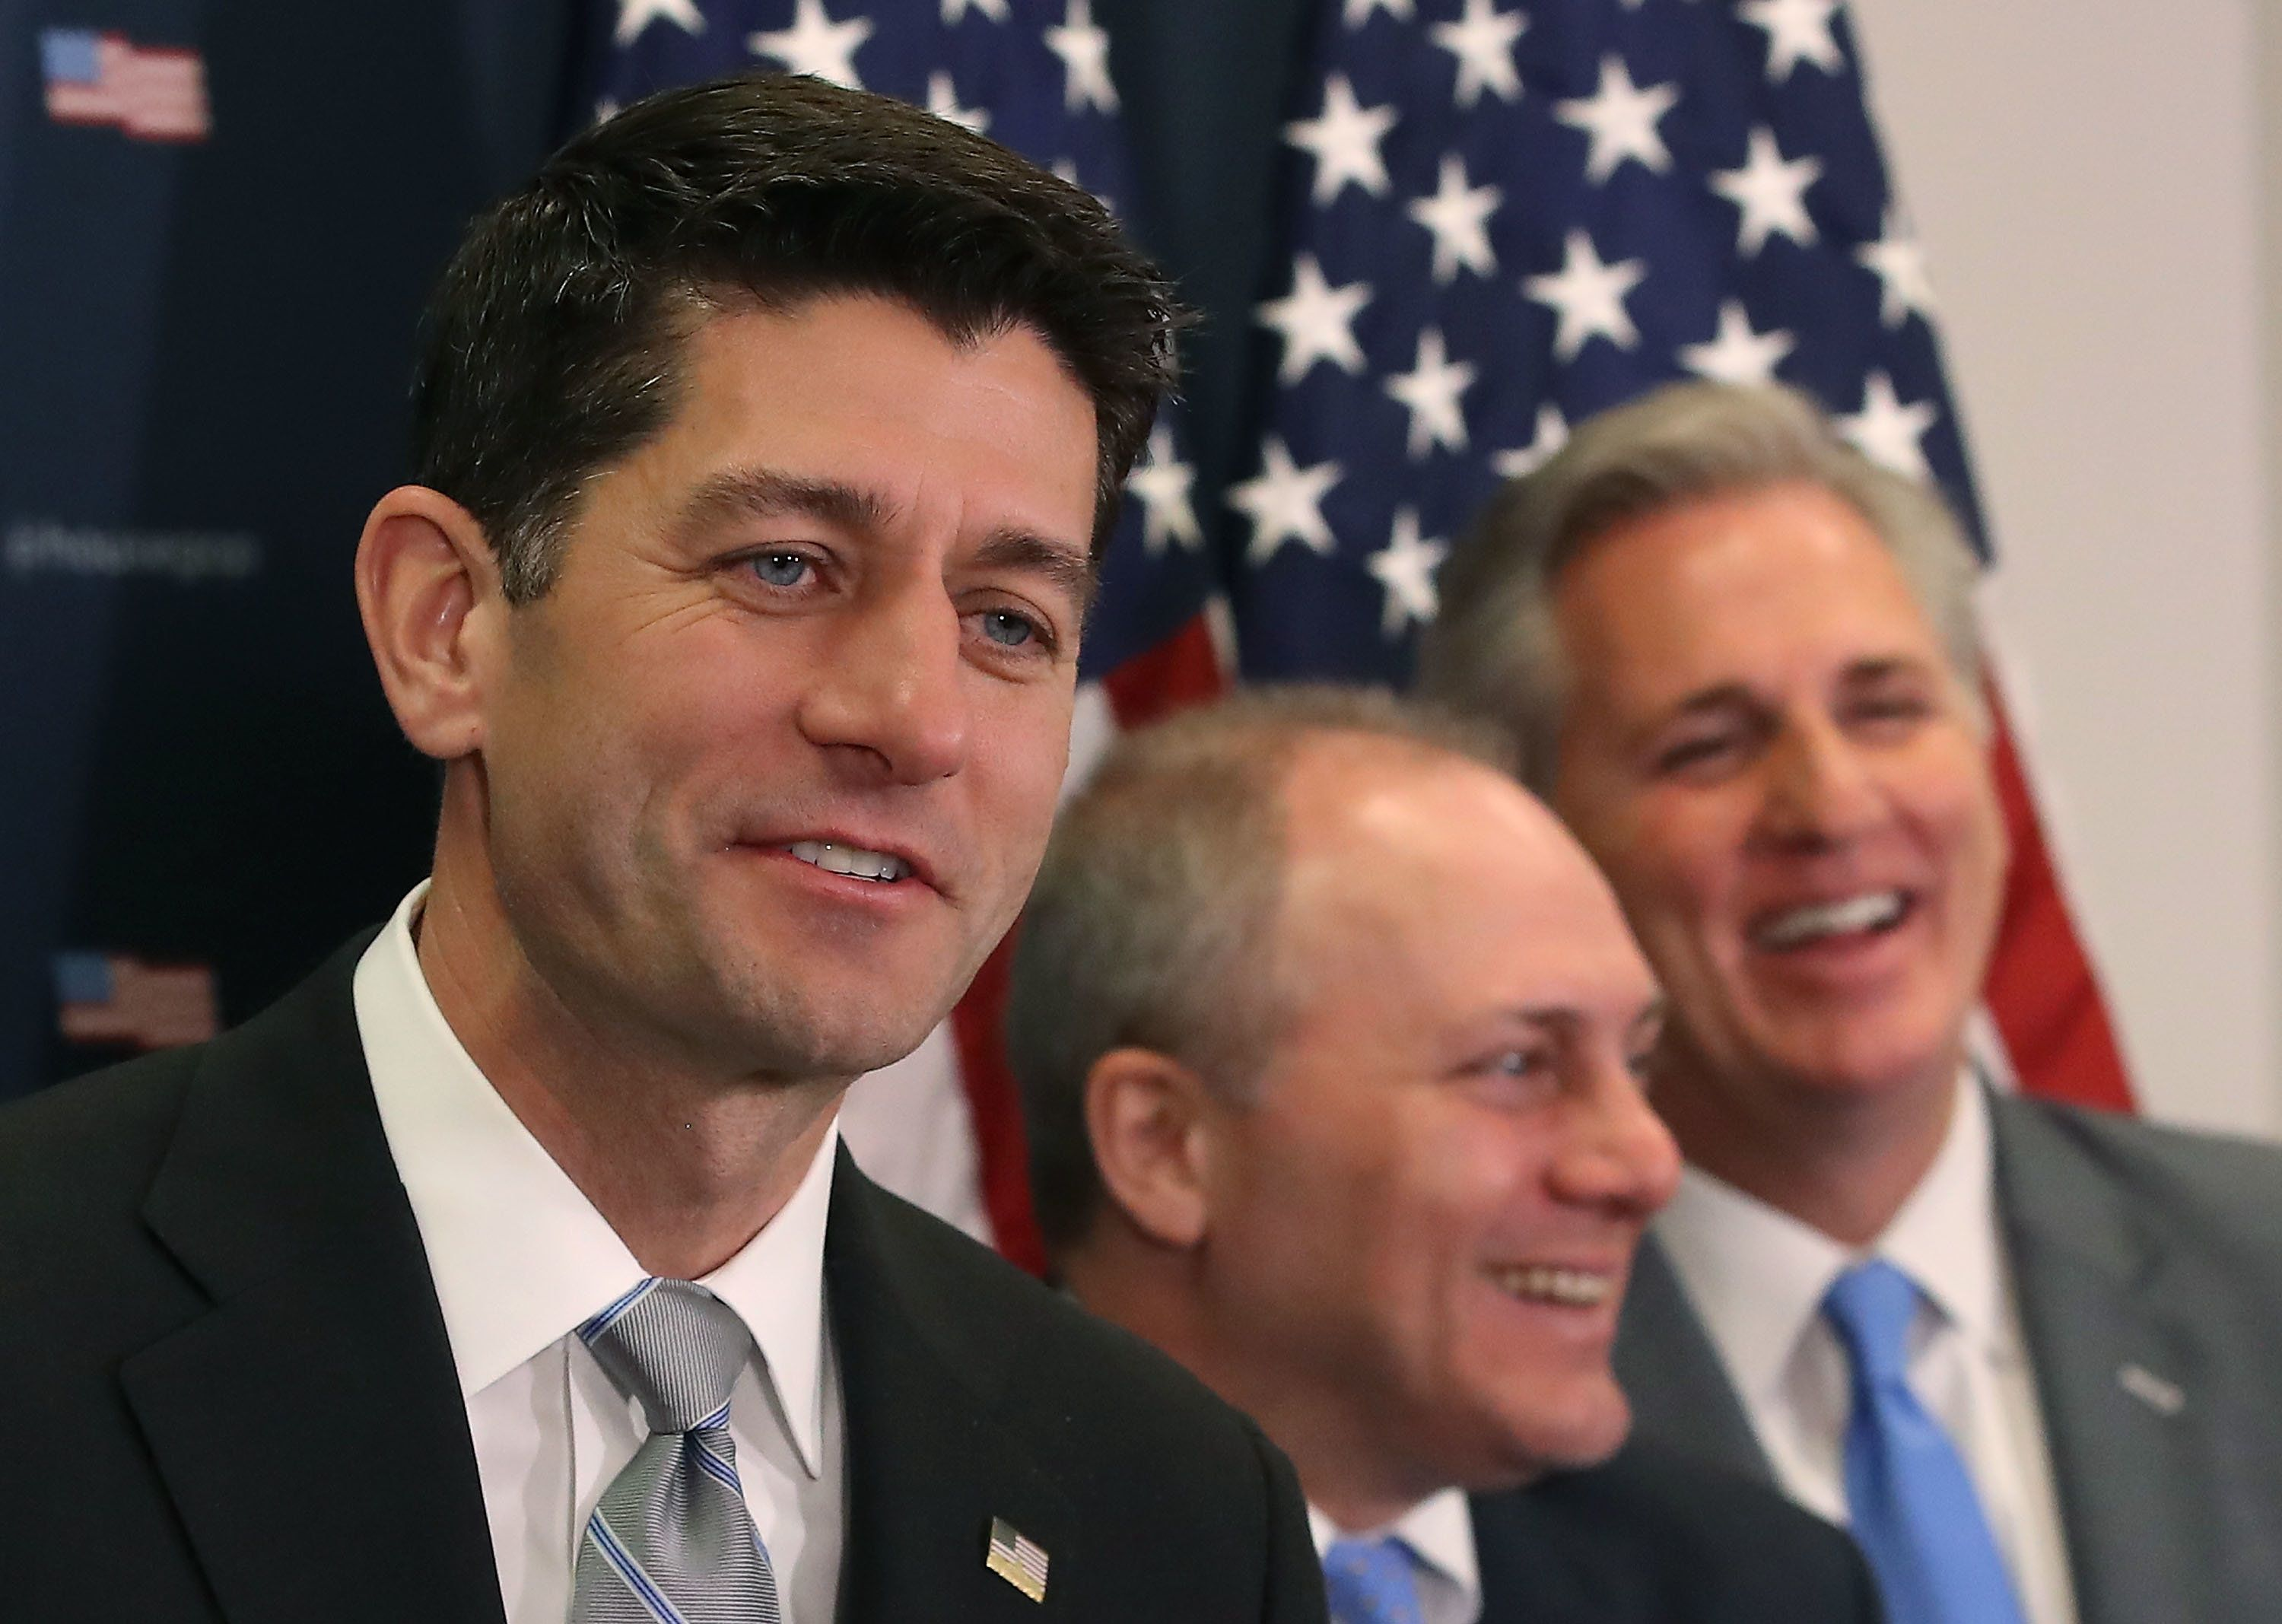 WASHINGTON, DC - DECEMBER 05: House Speaker Paul Ryan (R-WI) speaks while flanked by House Majority Whip, Steve Scalise (R-LA) (C) and House Majority Leader Kevin McCarthy (R-CA), during a news conference on Capitol Hill December 5, 2017 in Washington, DC. Speaker Ryan spoke about progress in the tax reform legislation that is currently in conference committee.   (Photo by Mark Wilson/Getty Images)